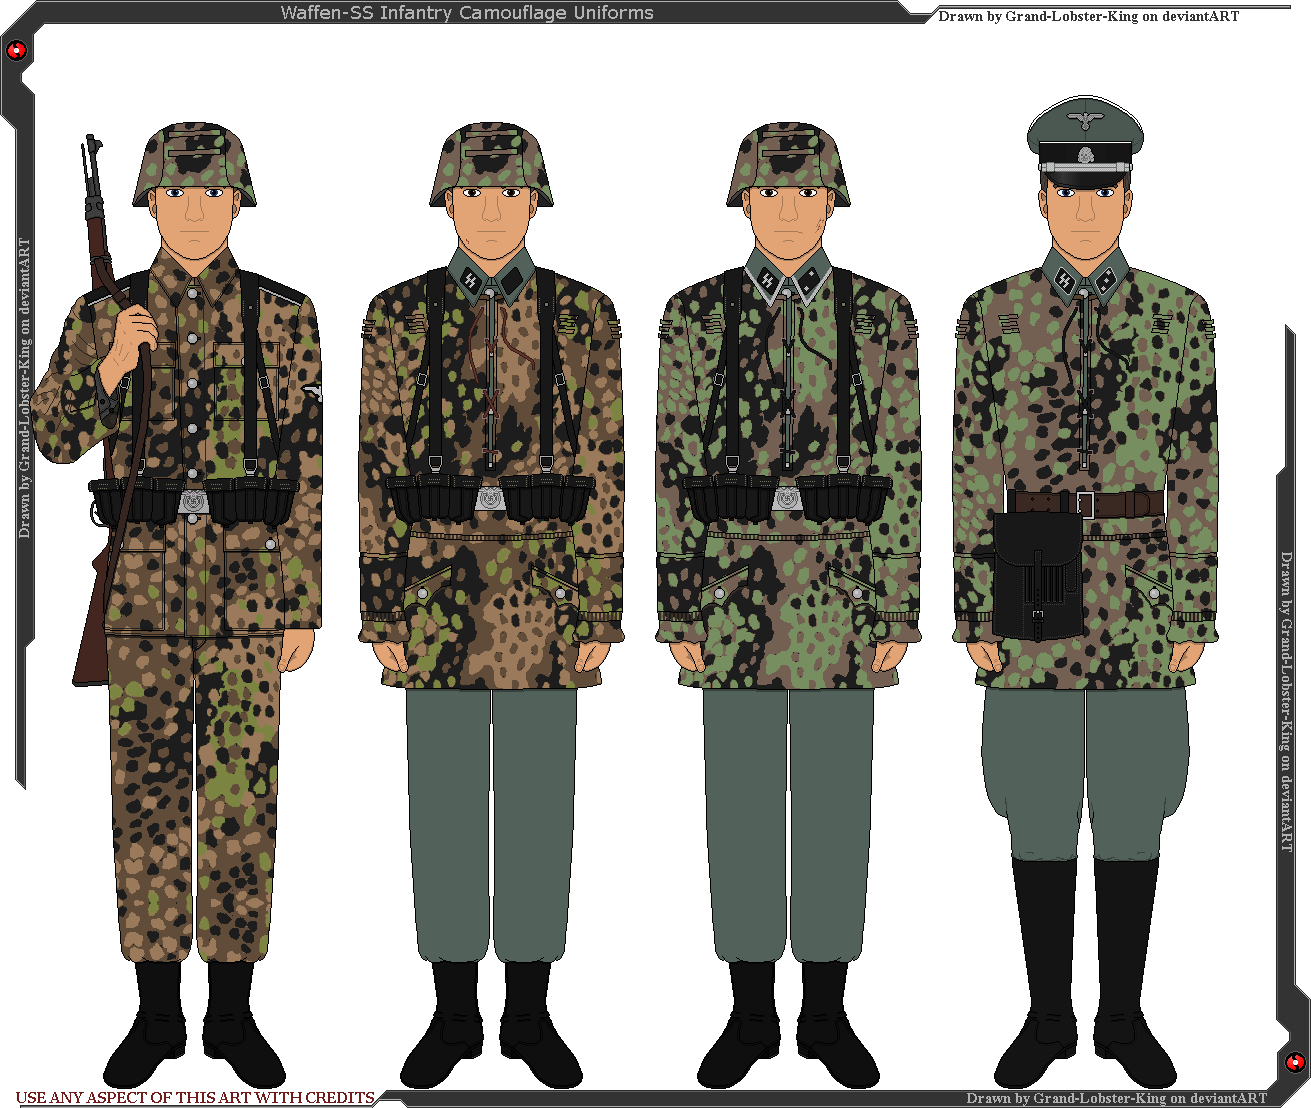 Waffen-SS Camouflaged Infantry Uniforms by Grand-Lobster-King on DeviantArt